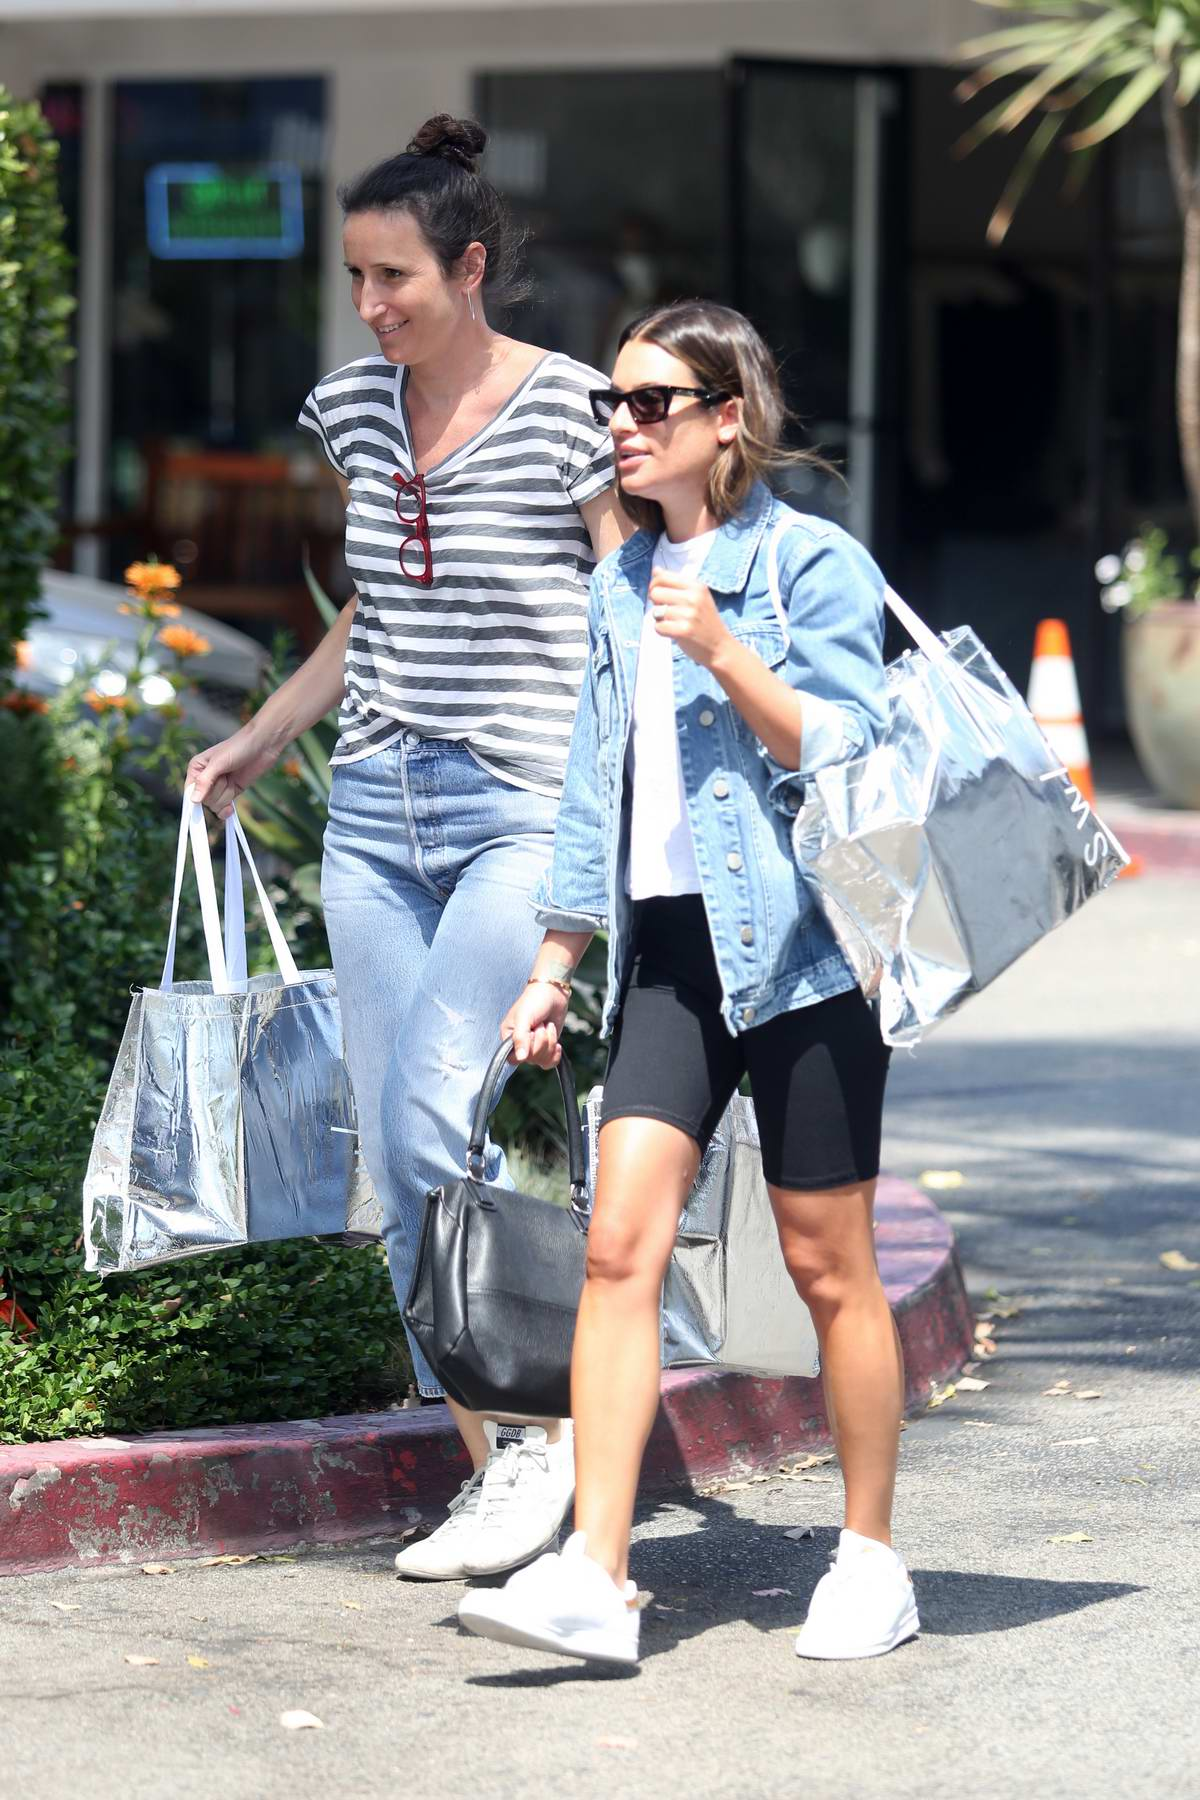 Lea Michele Wears A Denim Jacket With White Tee And Black Biker Shorts While Out With Friend In Out In Los Angeles 100919 5